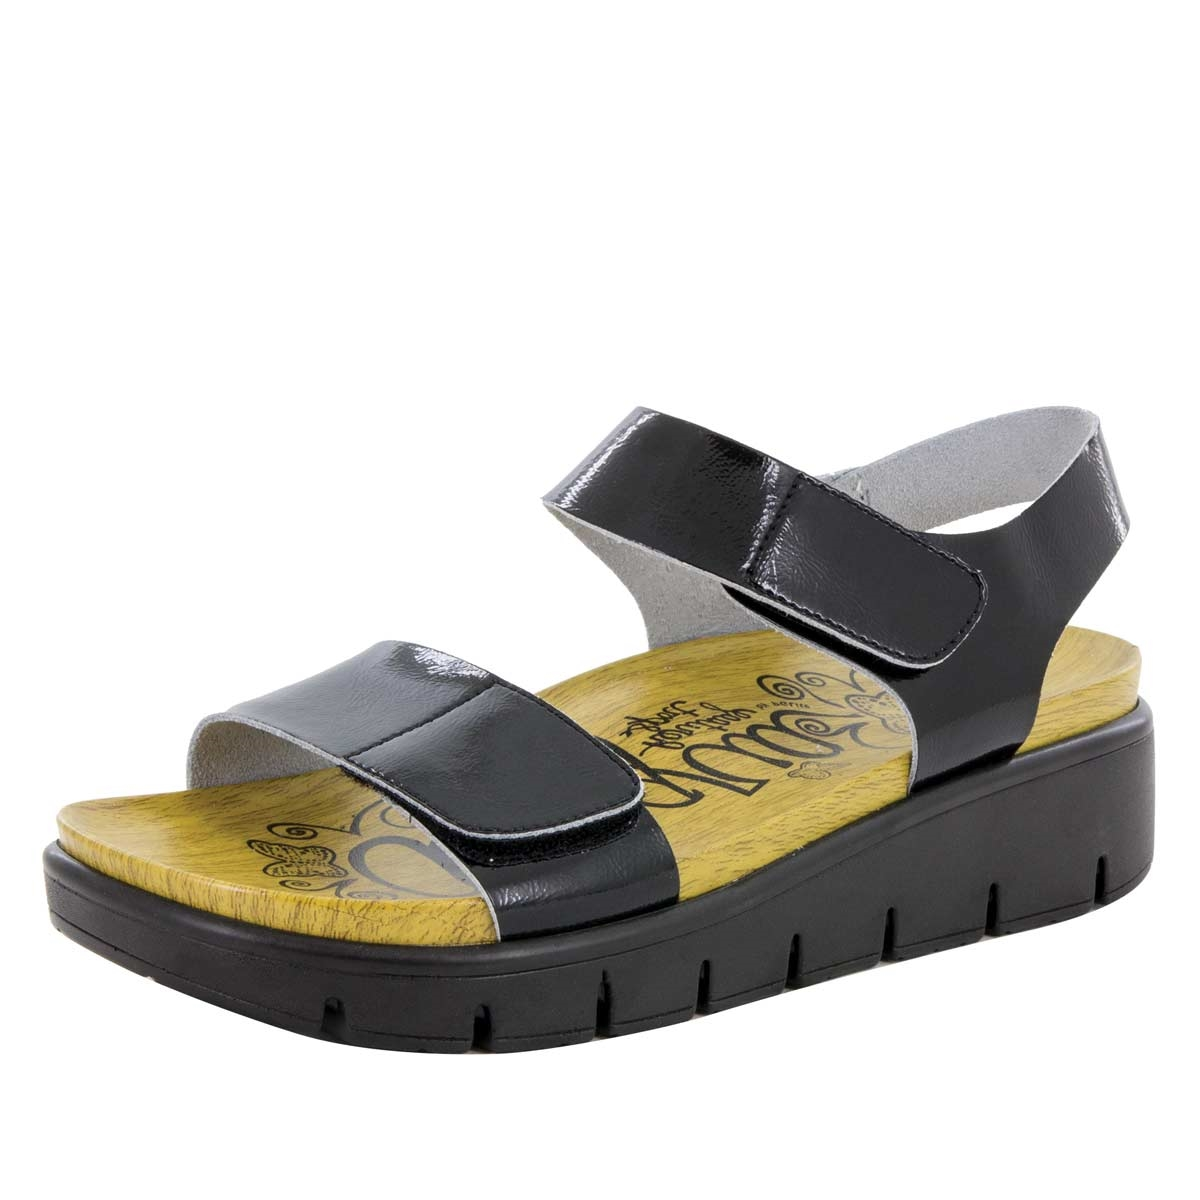 Alegria Playa Black Patent comfort sandals for women · View Larger Photo  Email ...